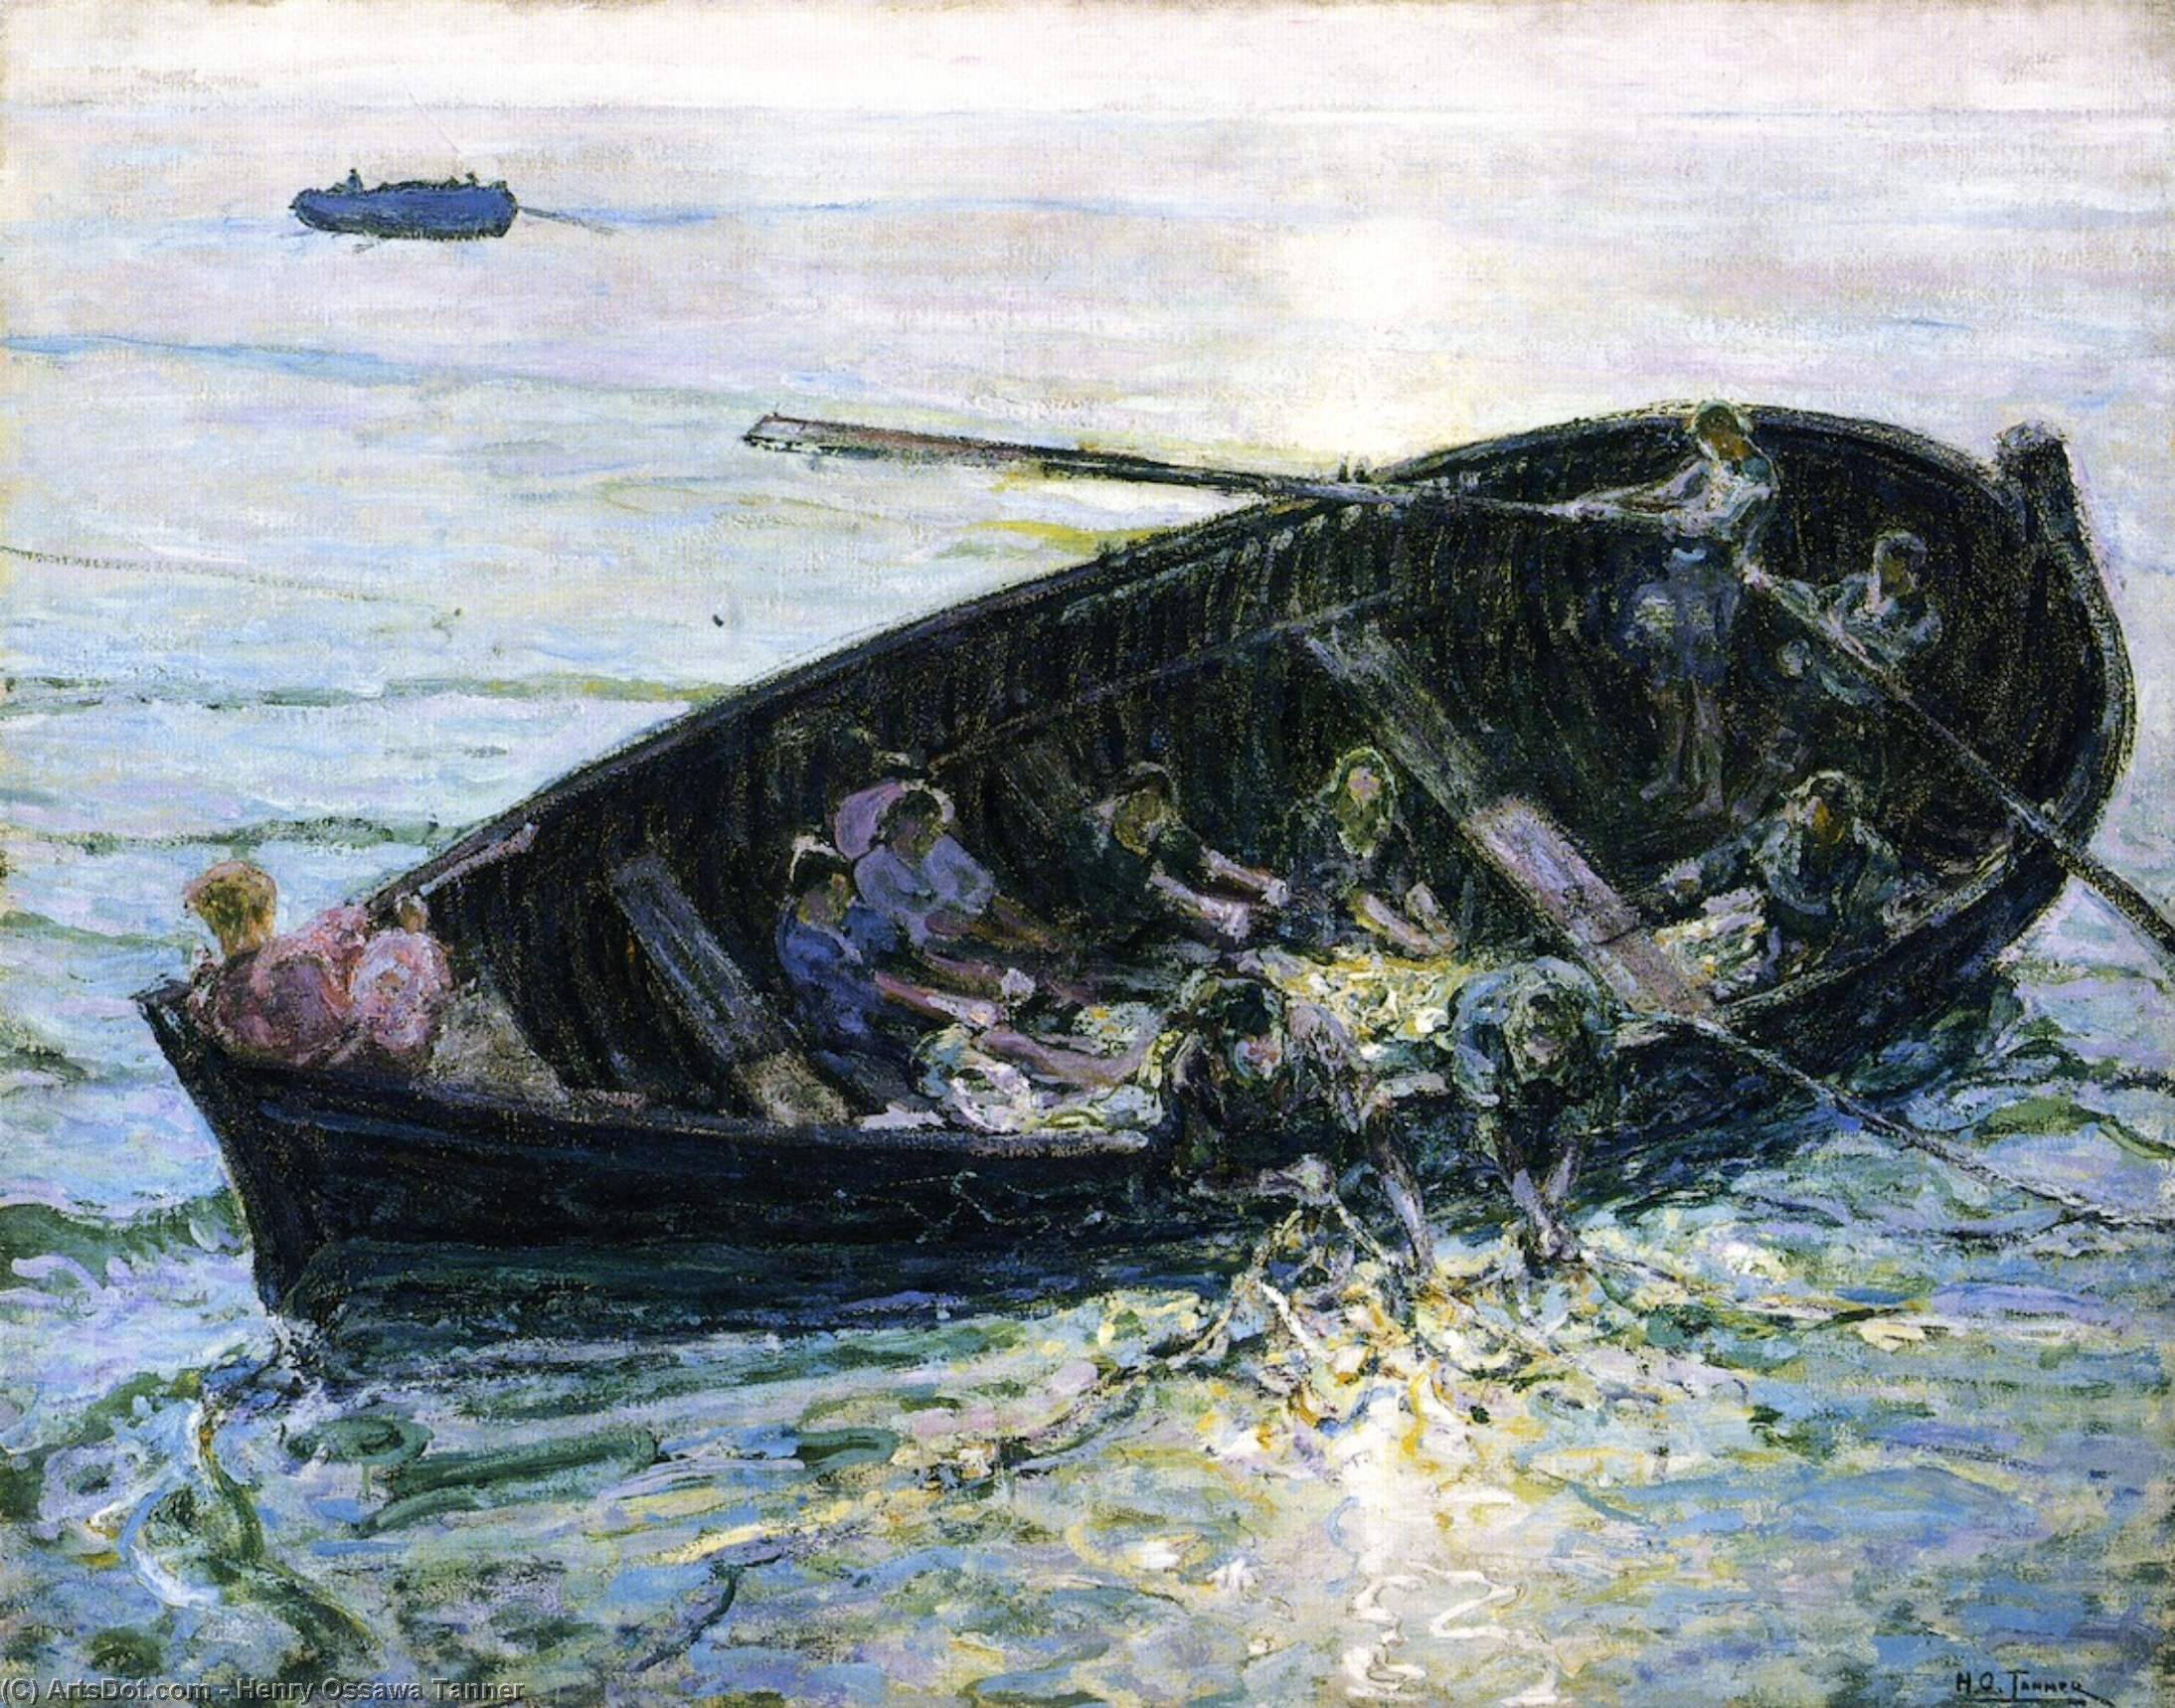 miraculeux tirer  de  poissons , huile sur toile de Henry Ossawa Tanner (1859-1937, United States)